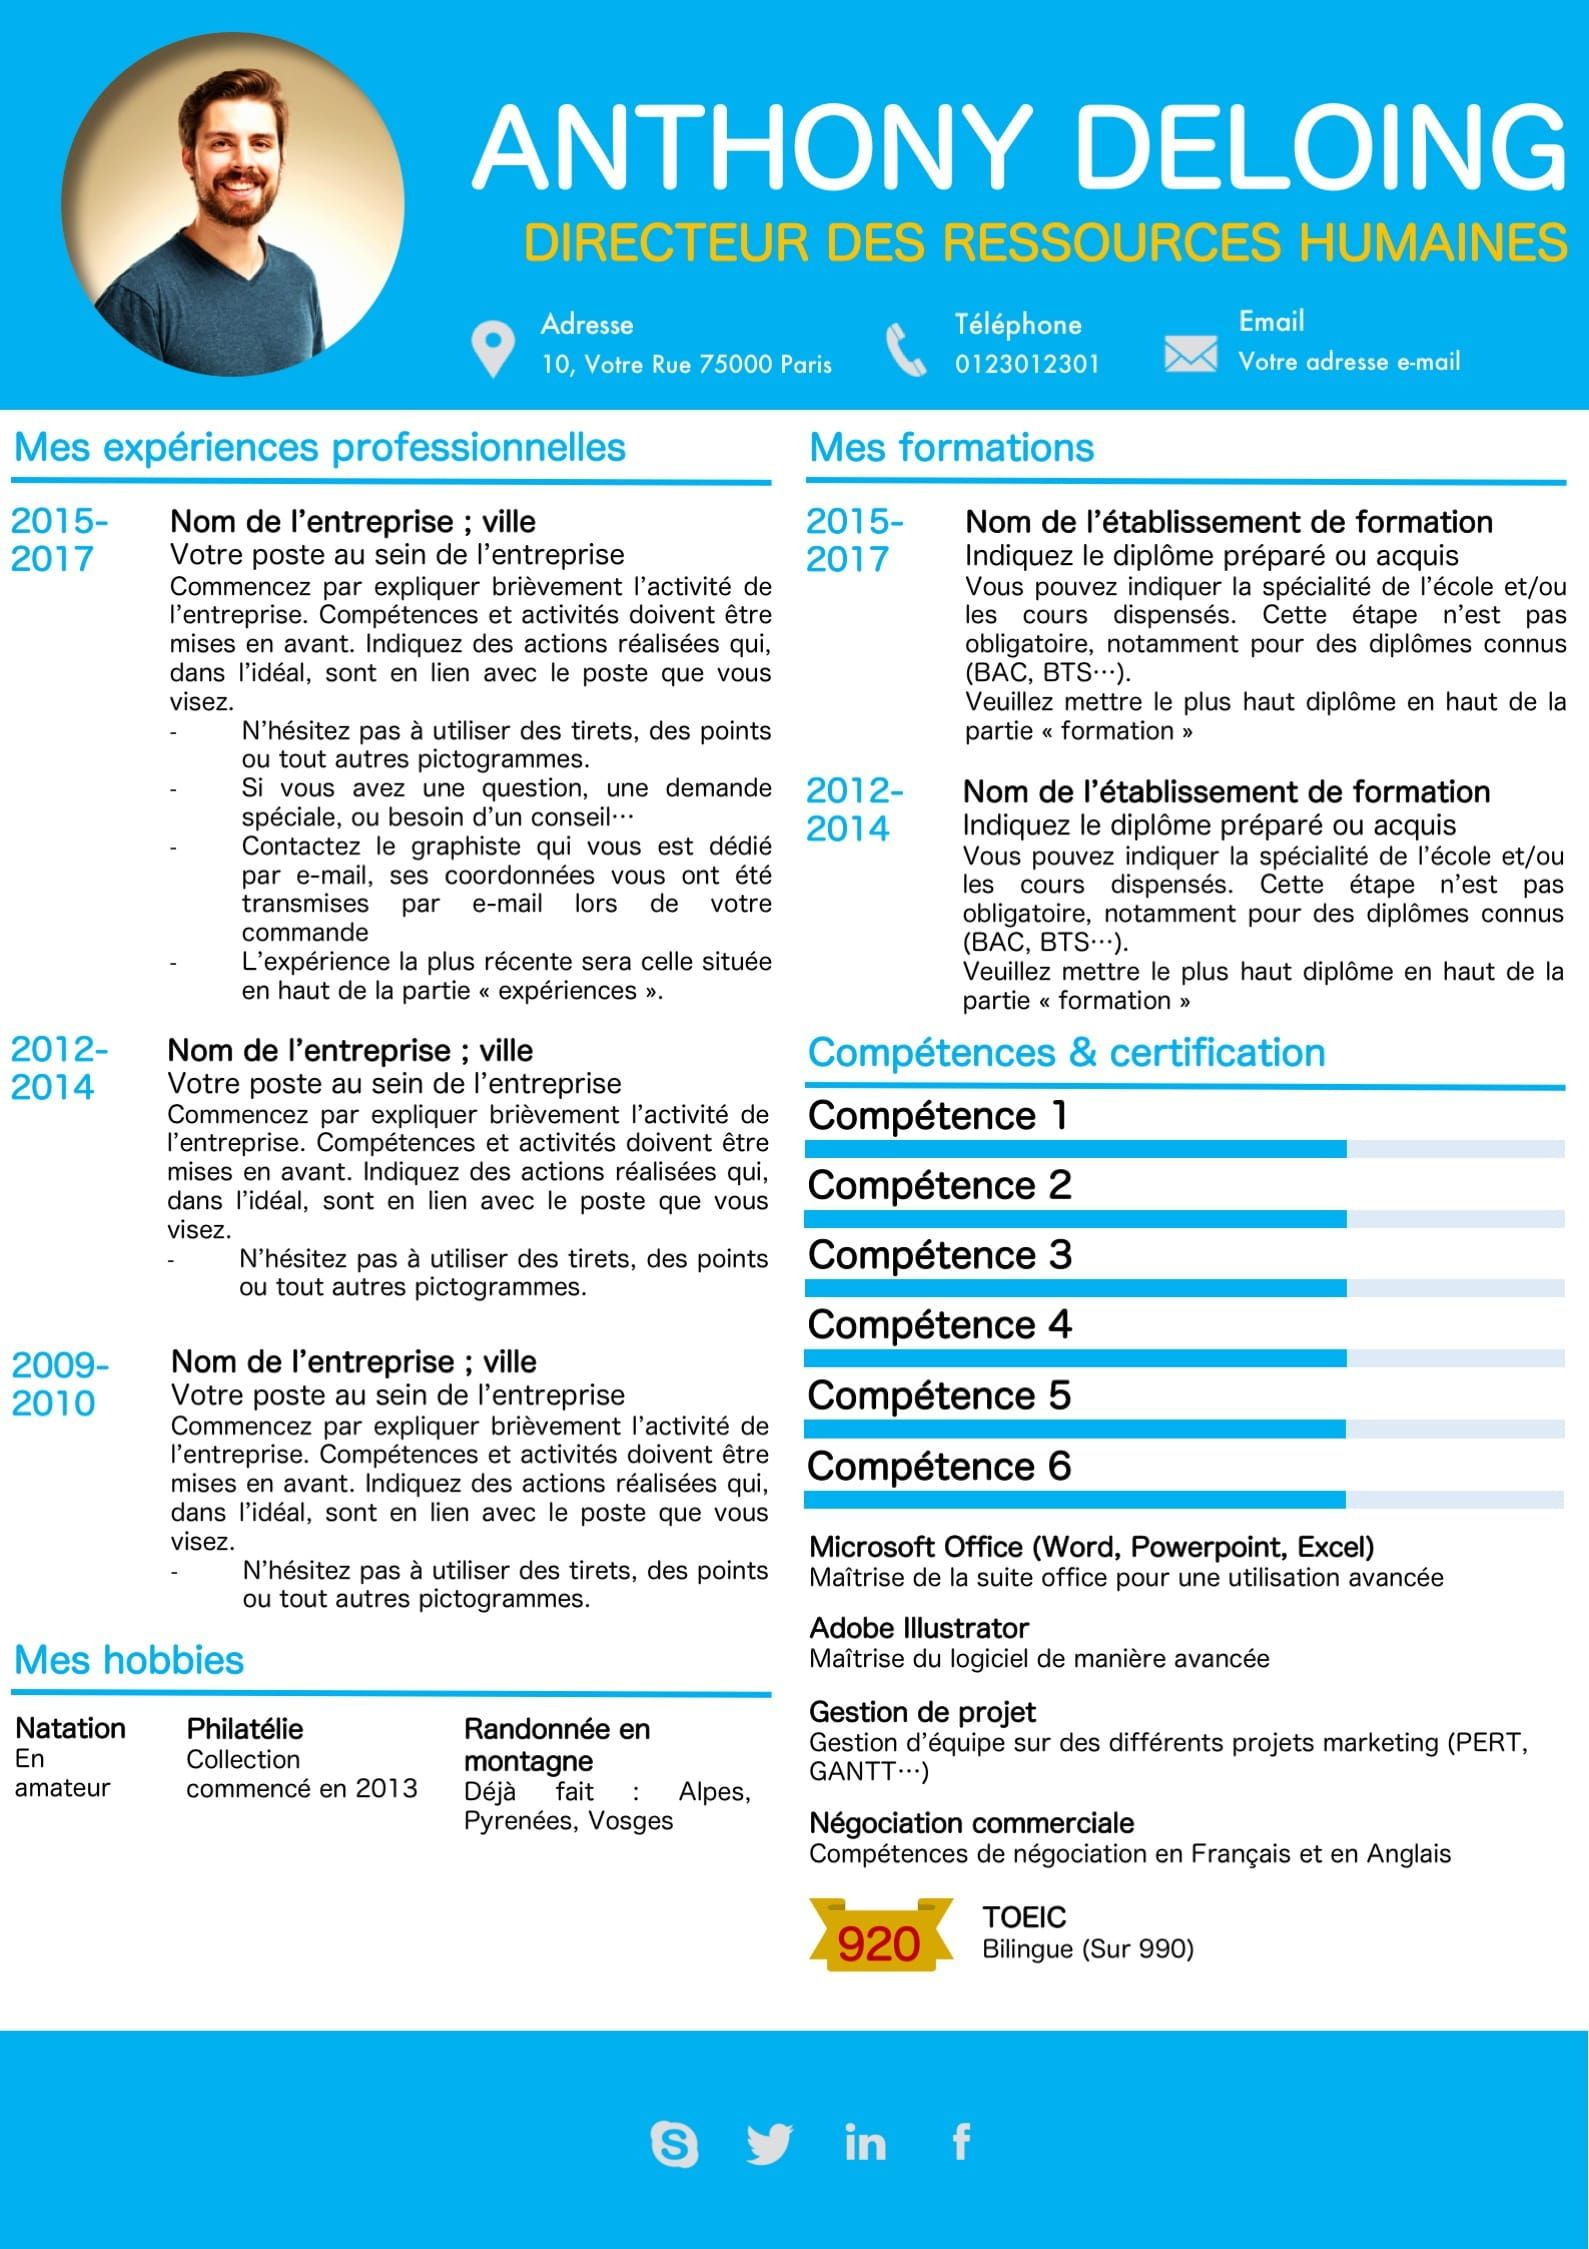 Modeles Cv Et Lettre De Motivation Bleu Modifiable Pour 6 99 Modele De Cv Design Lettre De Motivation Exemple Cv